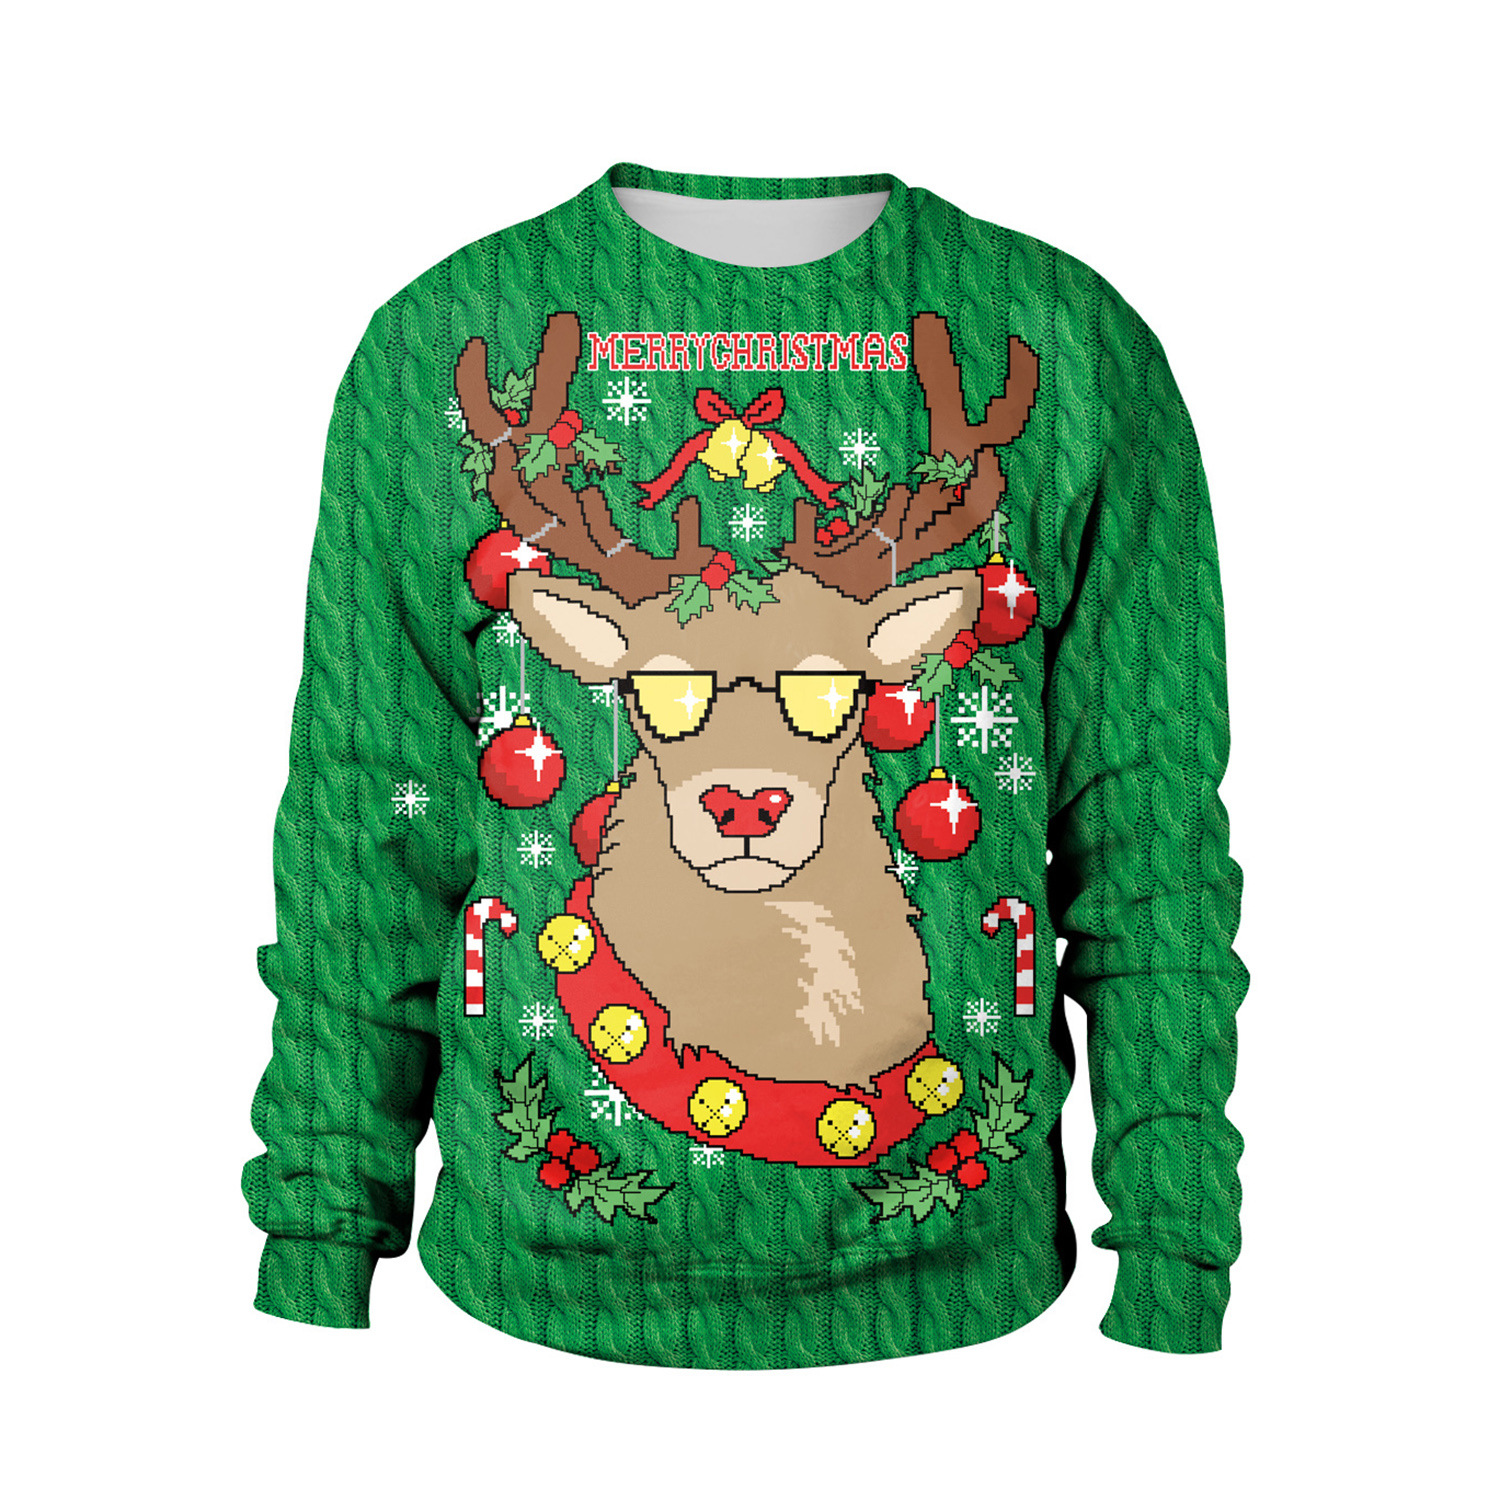 Cross Border Supply Of Goods Foreign Trade 2019 Christmas Deer Number 3D Digital Printing Hoodie Large Size Dress SB102-006